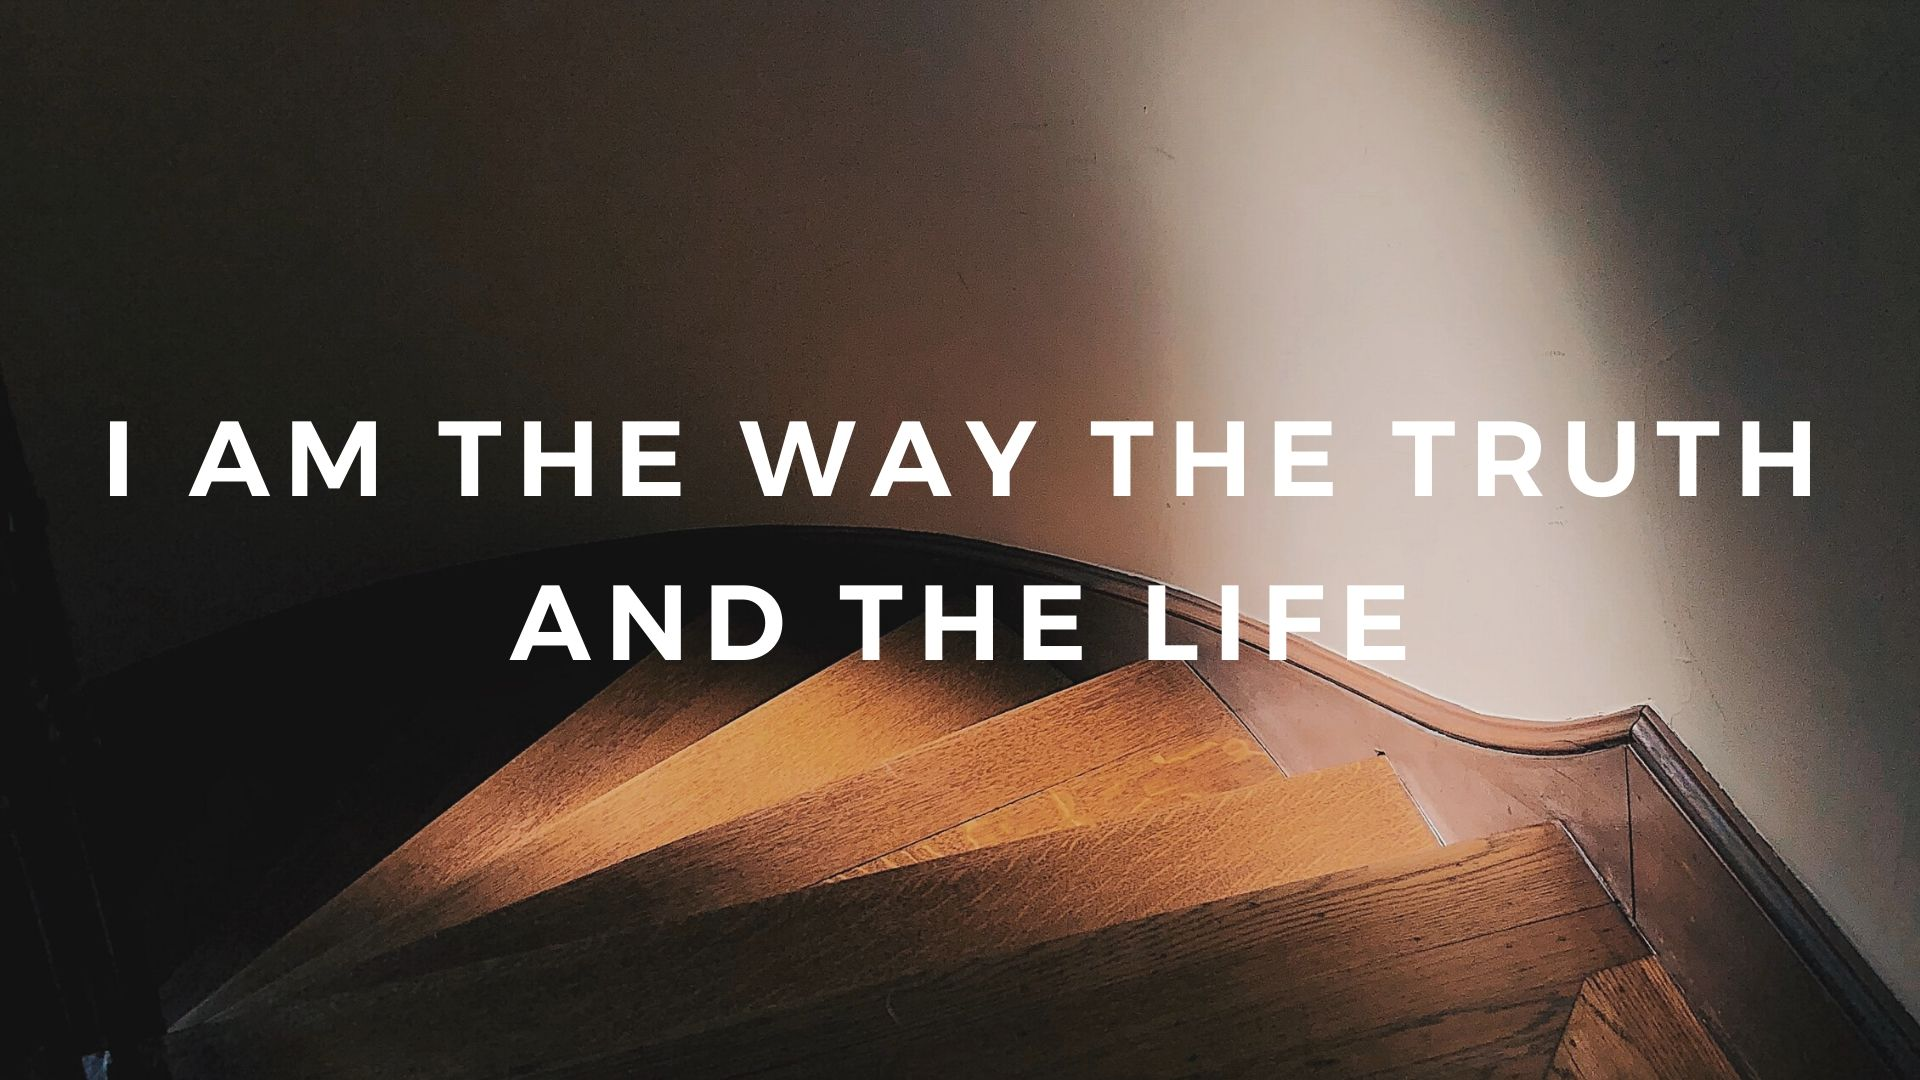 I Am the Way the Truth and the Life - Common Grace